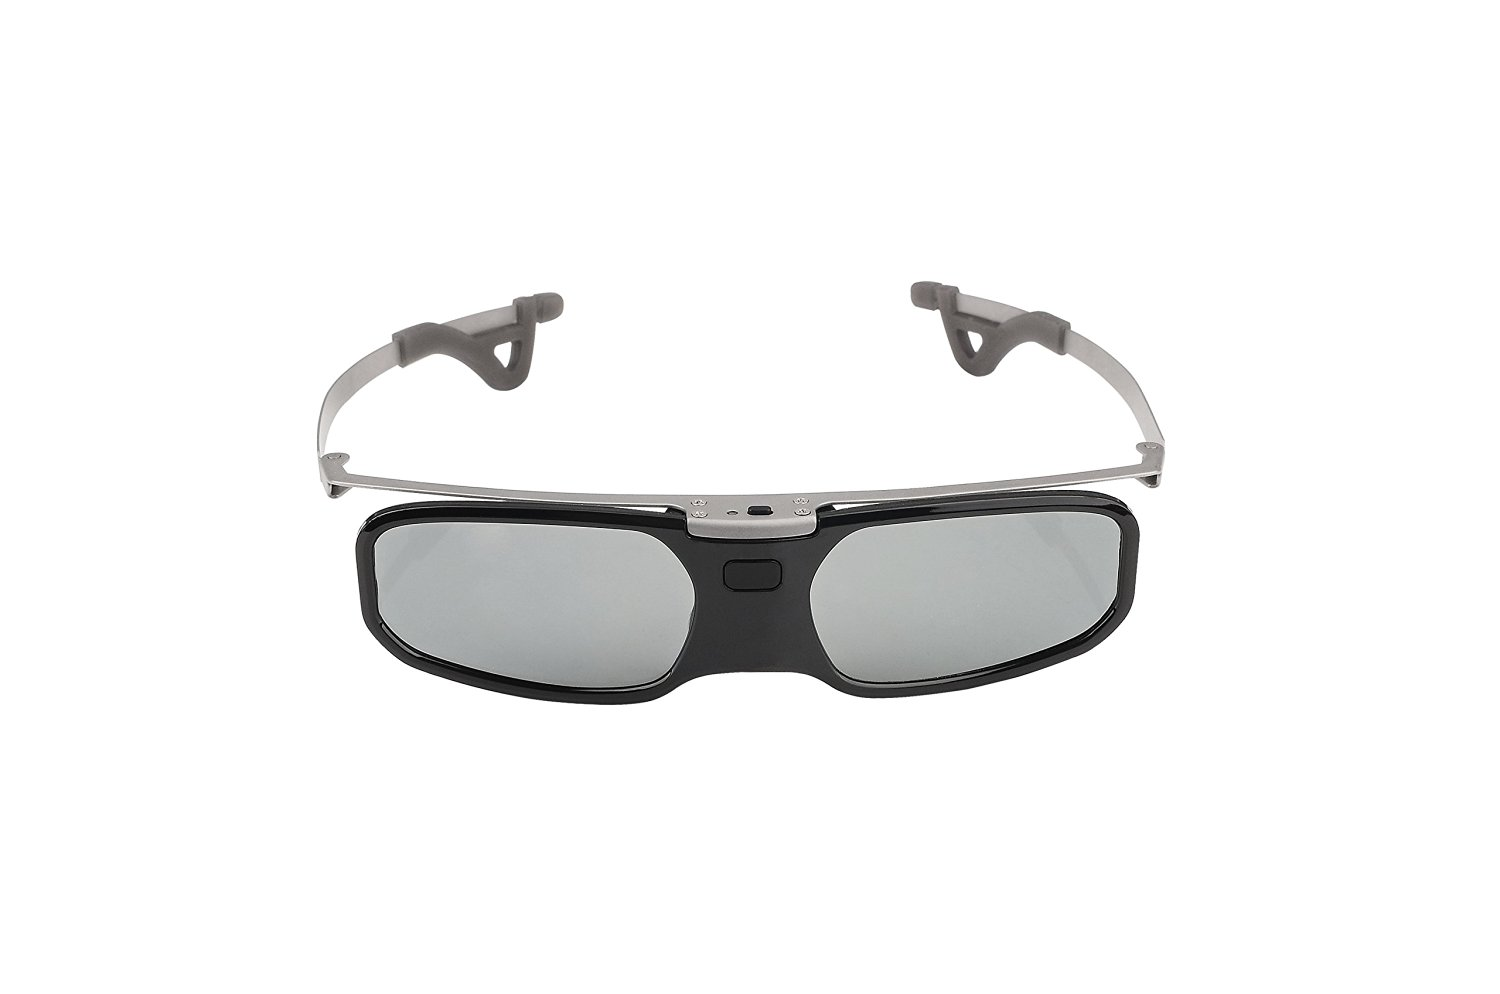 d495573803d8a Get Quotations · Clips Type Bluetooth 3D Active Shutter Glasses For Samsung Sony  3D TV EPSON Epson Projector